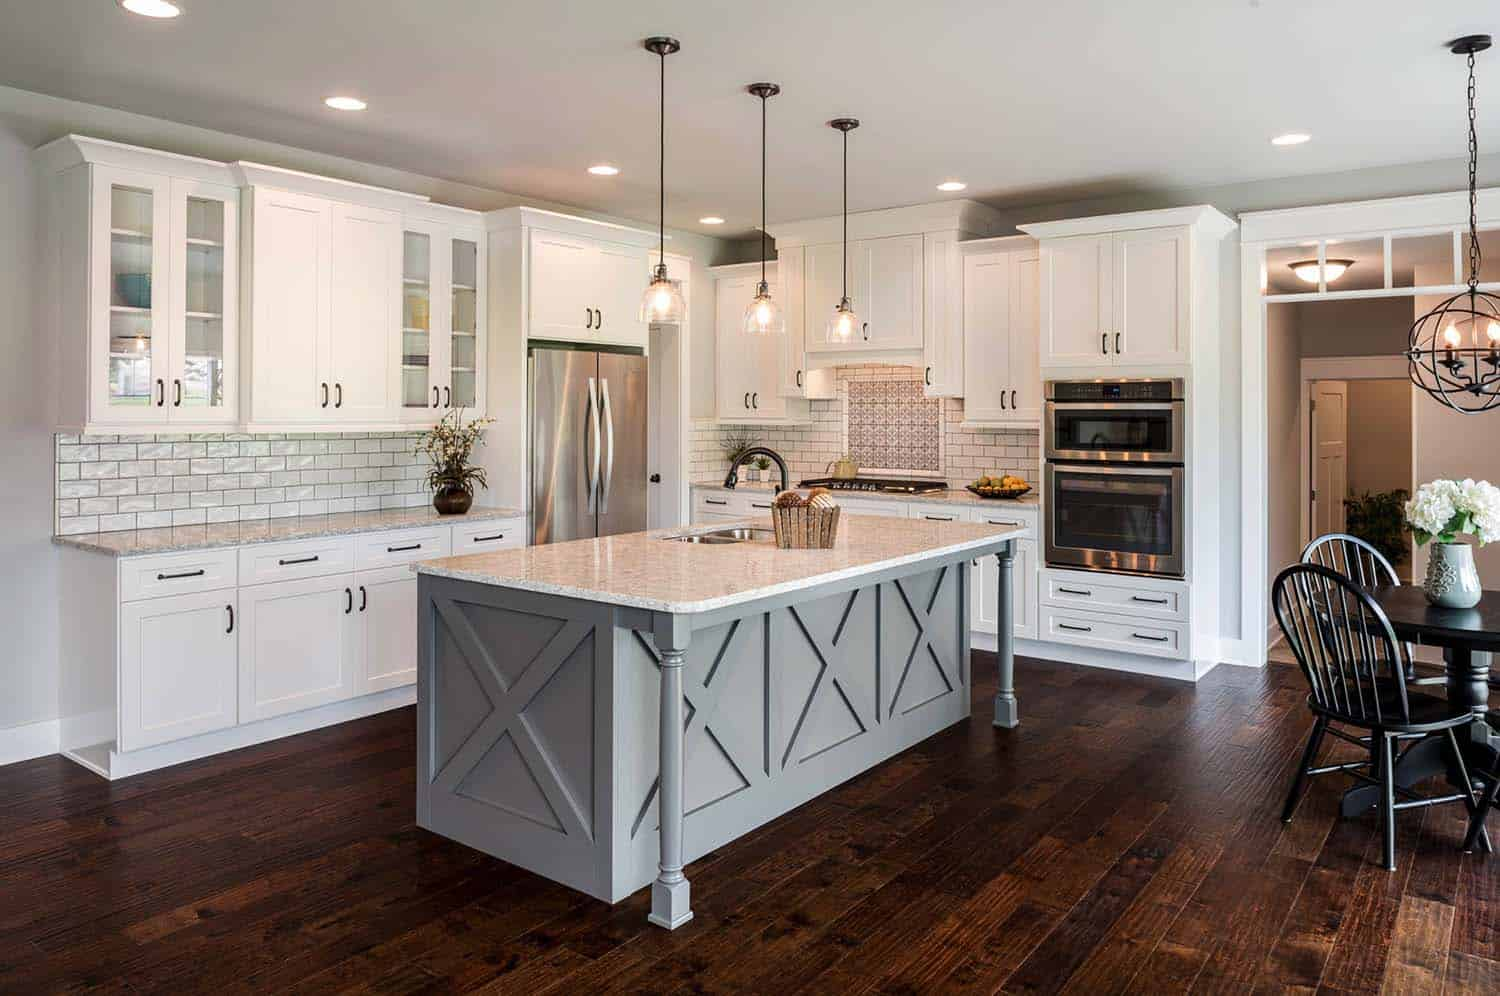 farmhouse kitchen cabinets ceiling fan 35 43 amazingly creative and stylish ideas